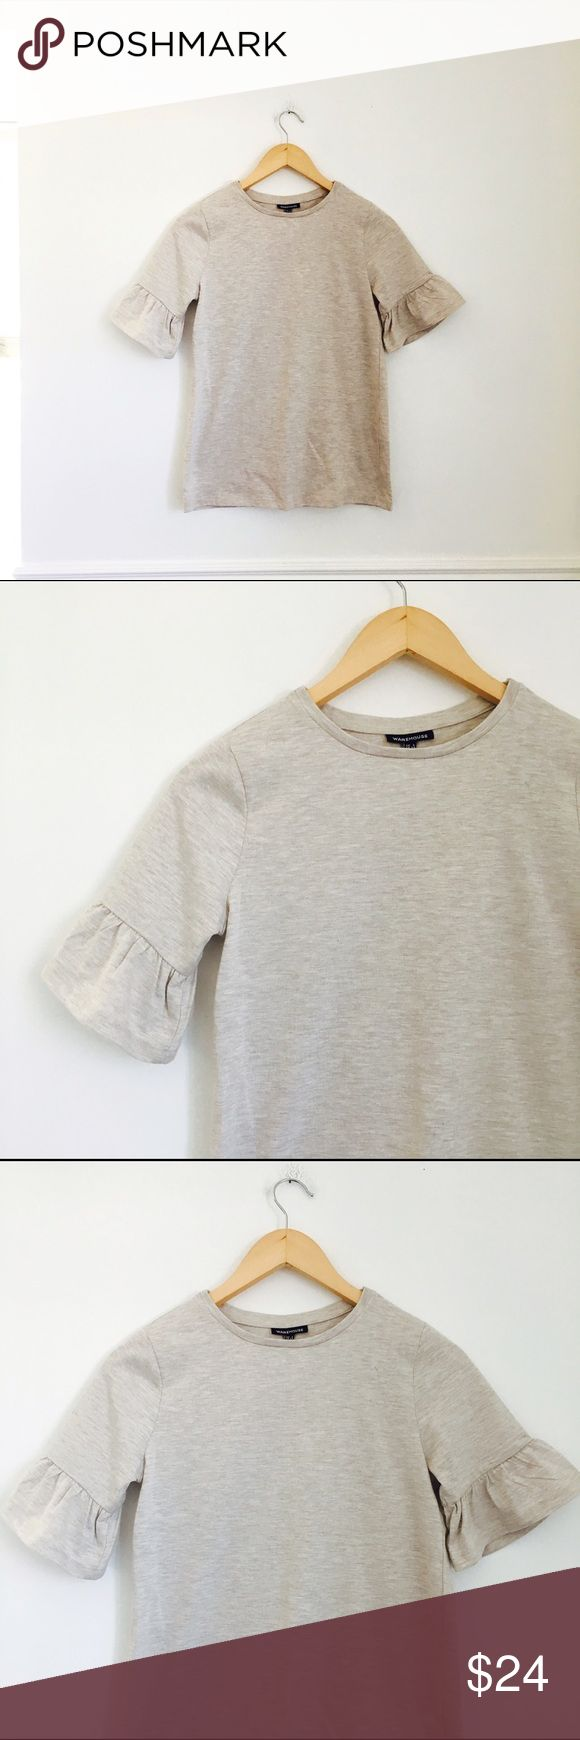 Asos top Oatmeal tee with bell sleeves in cotton and polyester. Size 2. ASOS Tops